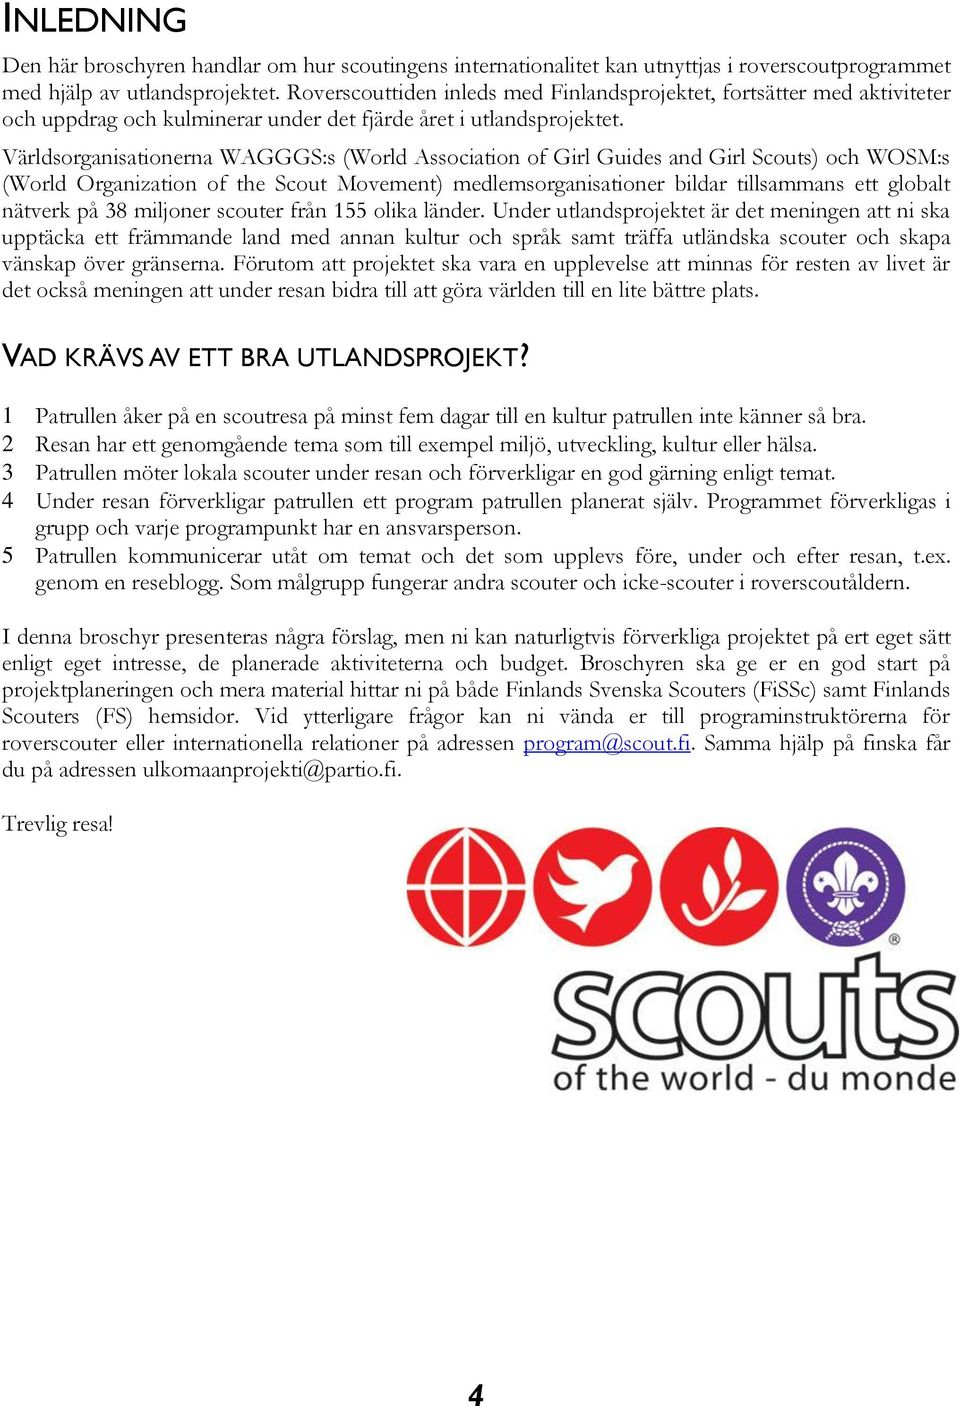 Världsorganisationerna WAGGGS:s (World Association of Girl Guides and Girl Scouts) och WOSM:s (World Organization of the Scout Movement) medlemsorganisationer bildar tillsammans ett globalt nätverk